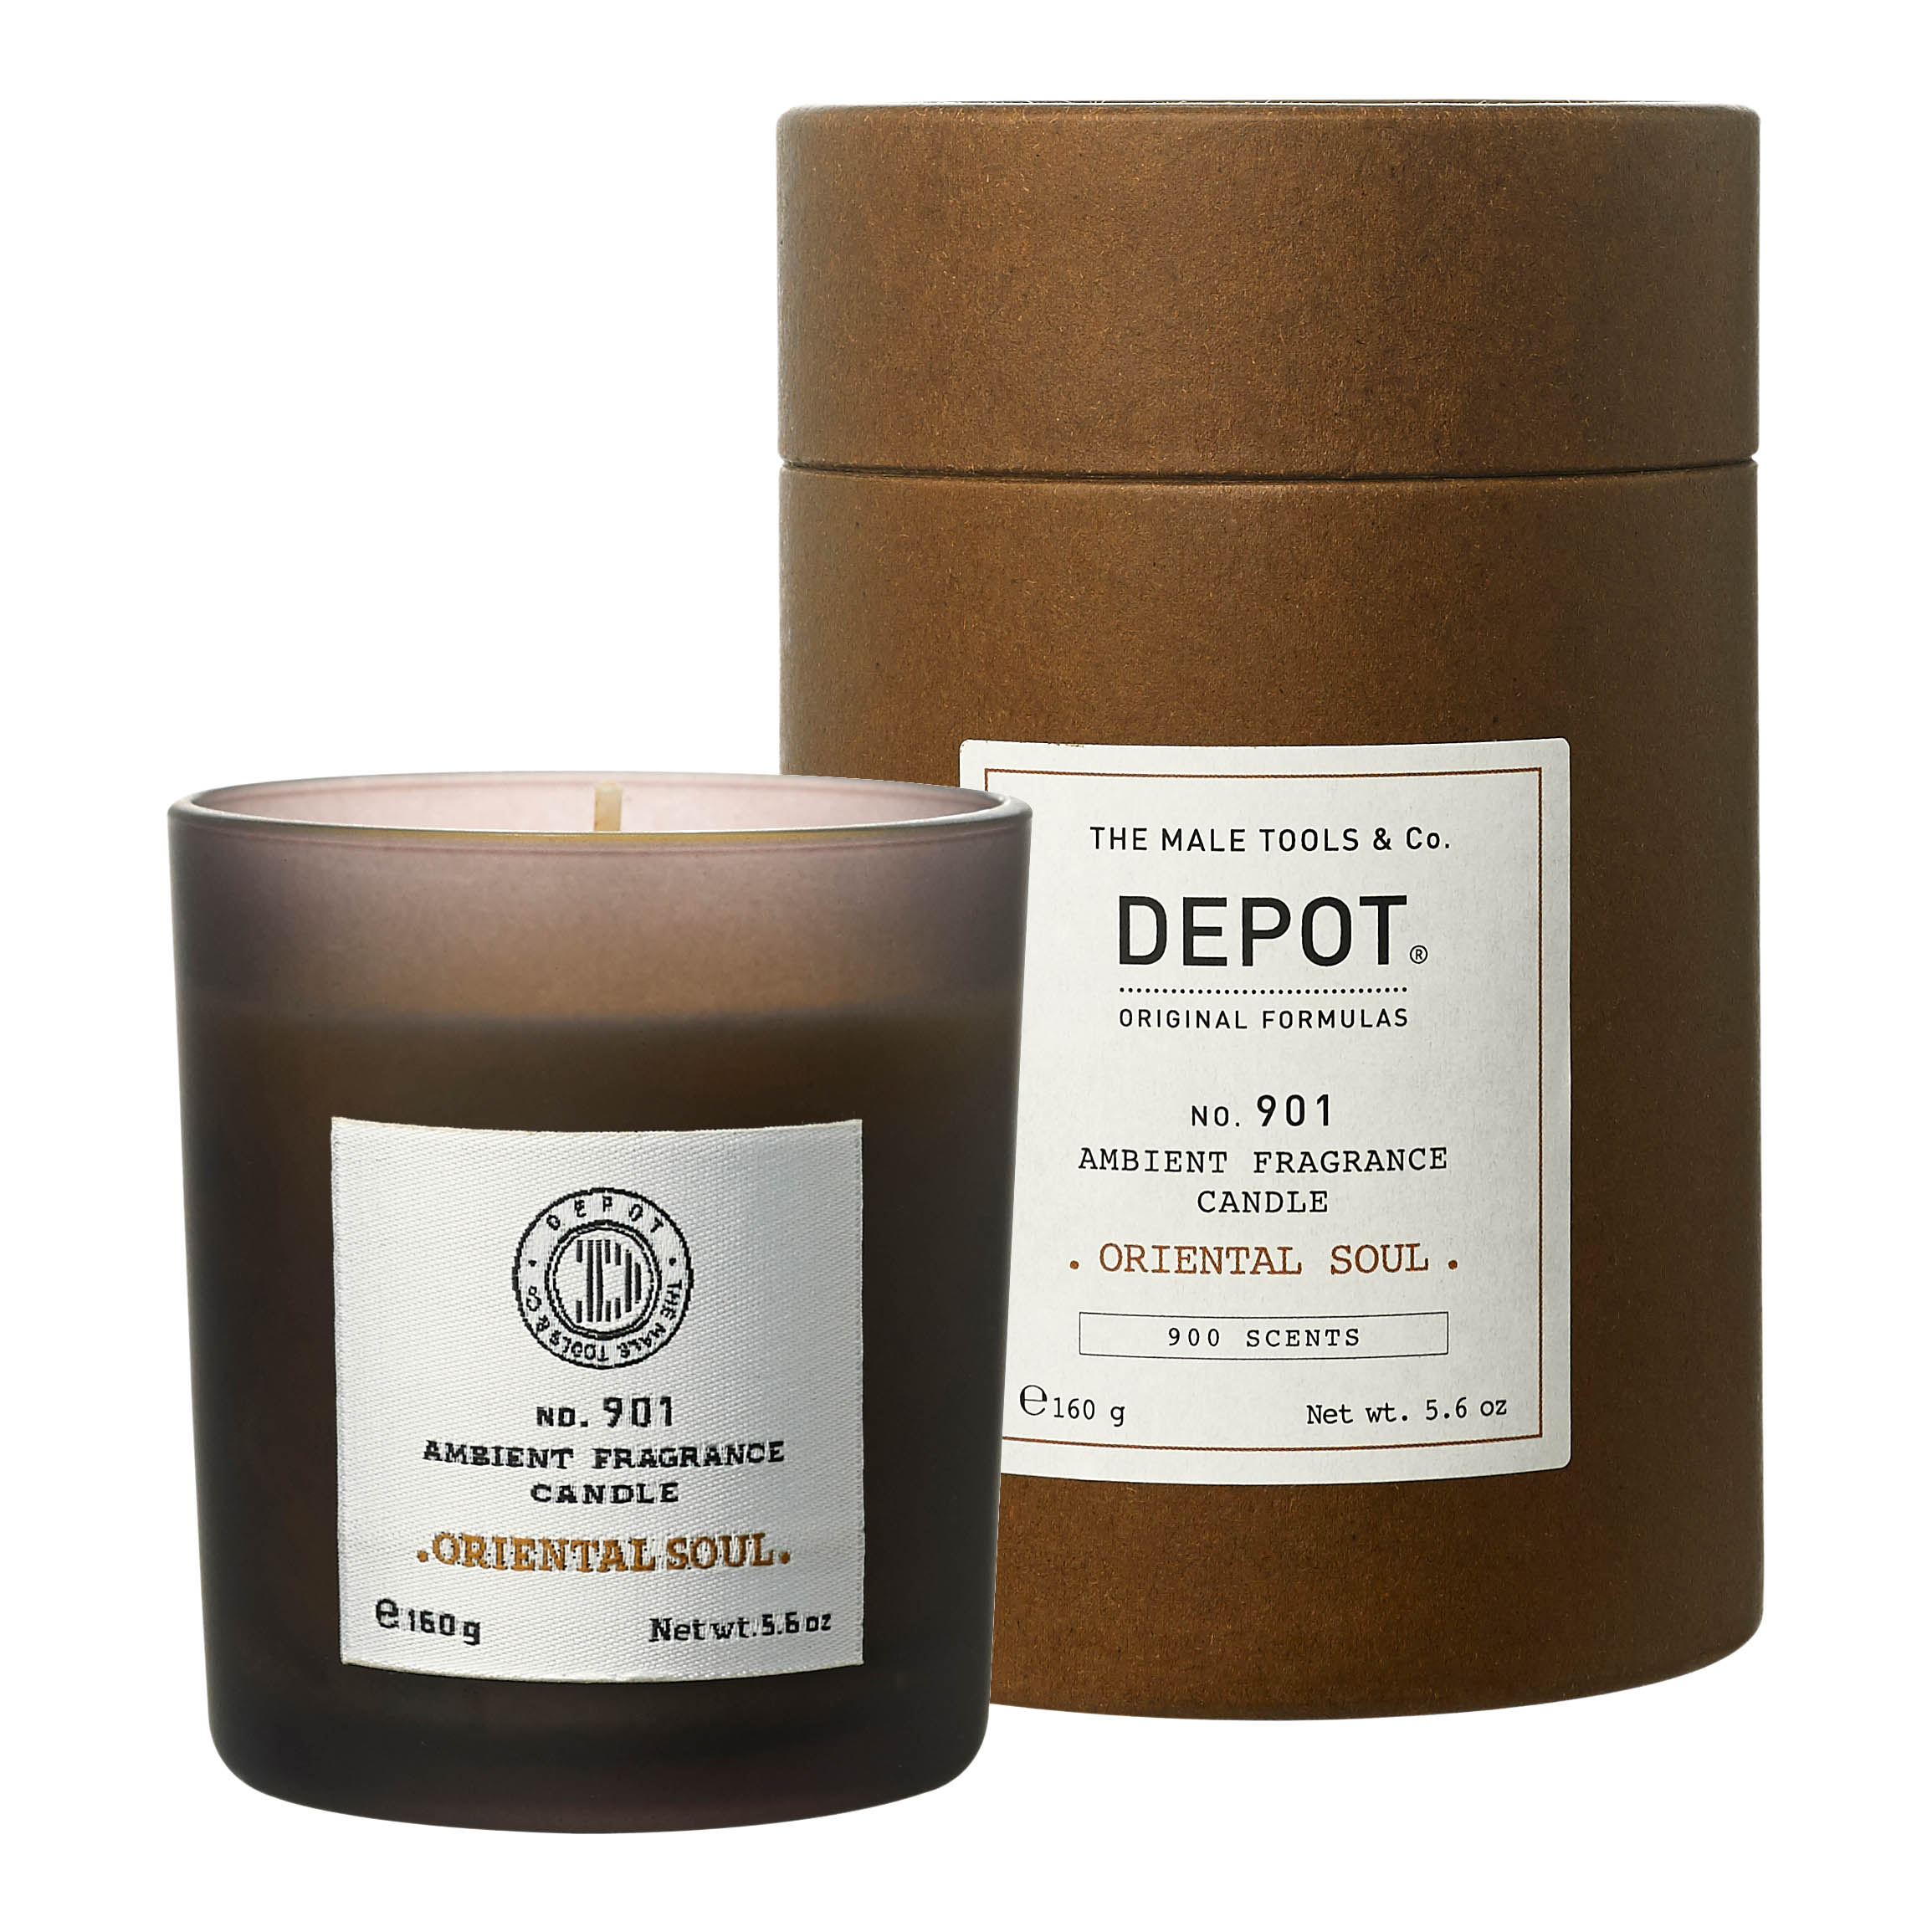 Depot No. 901 Ambient Fragrance Candle